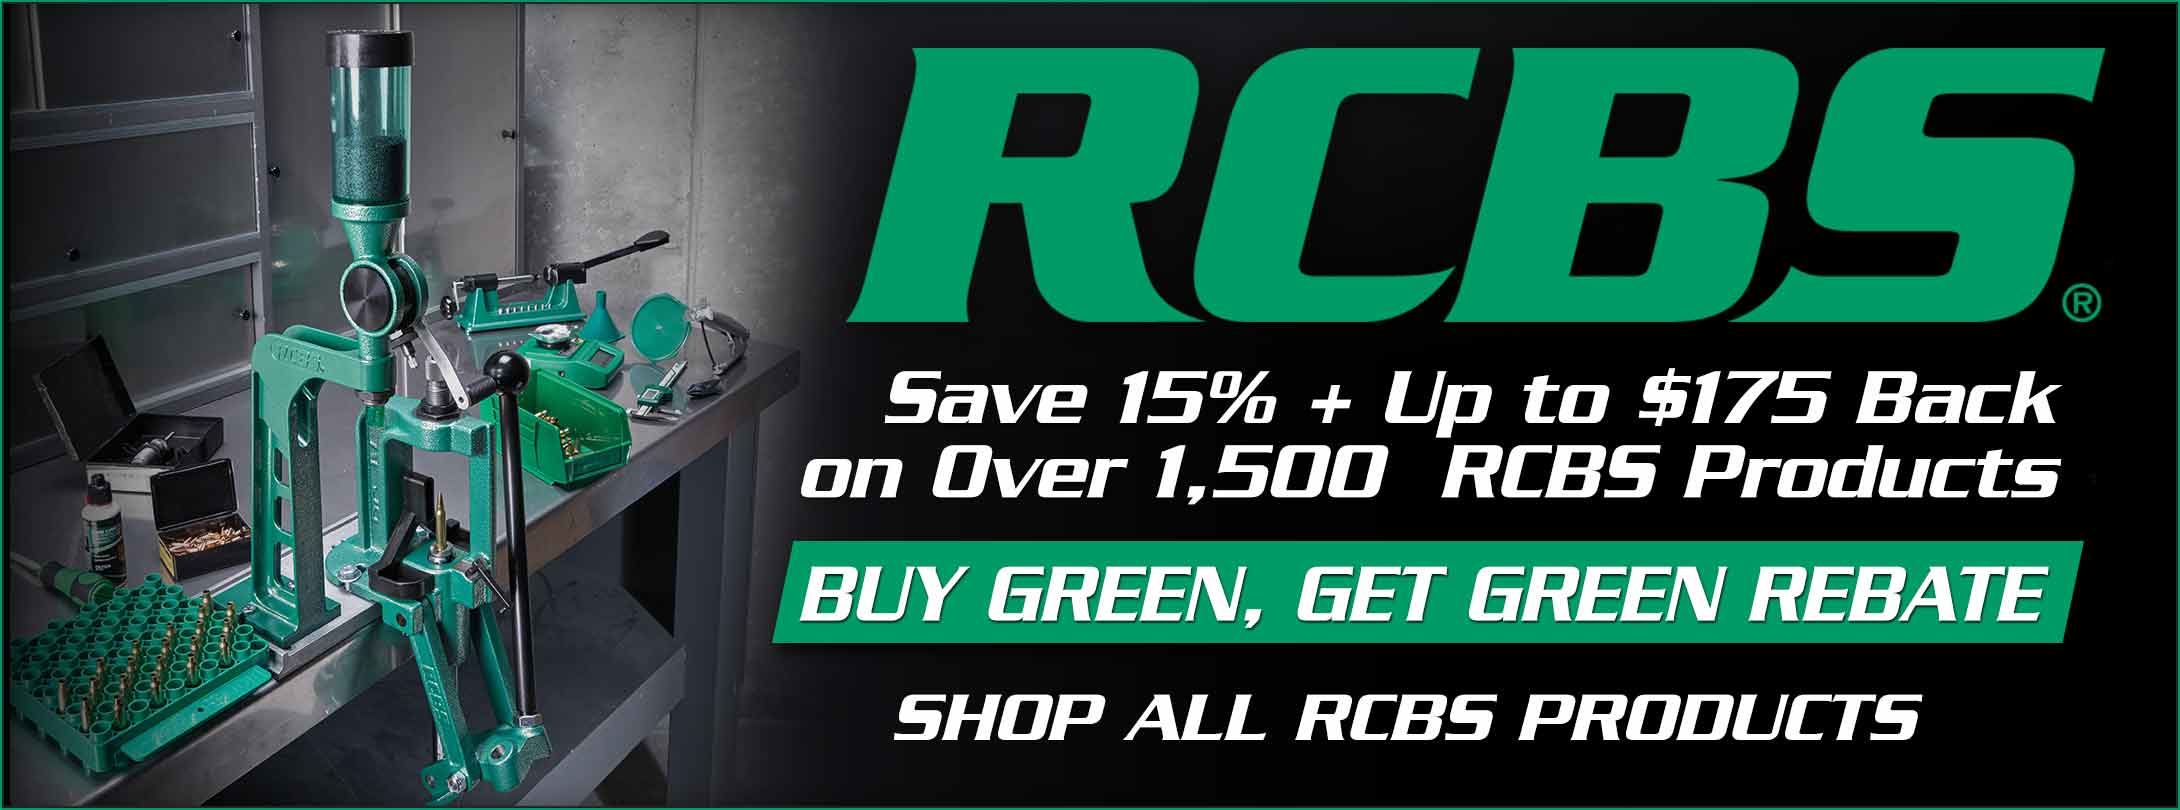 Save 15% +  Up To $175 Back on Over 1,500 RCBS Products